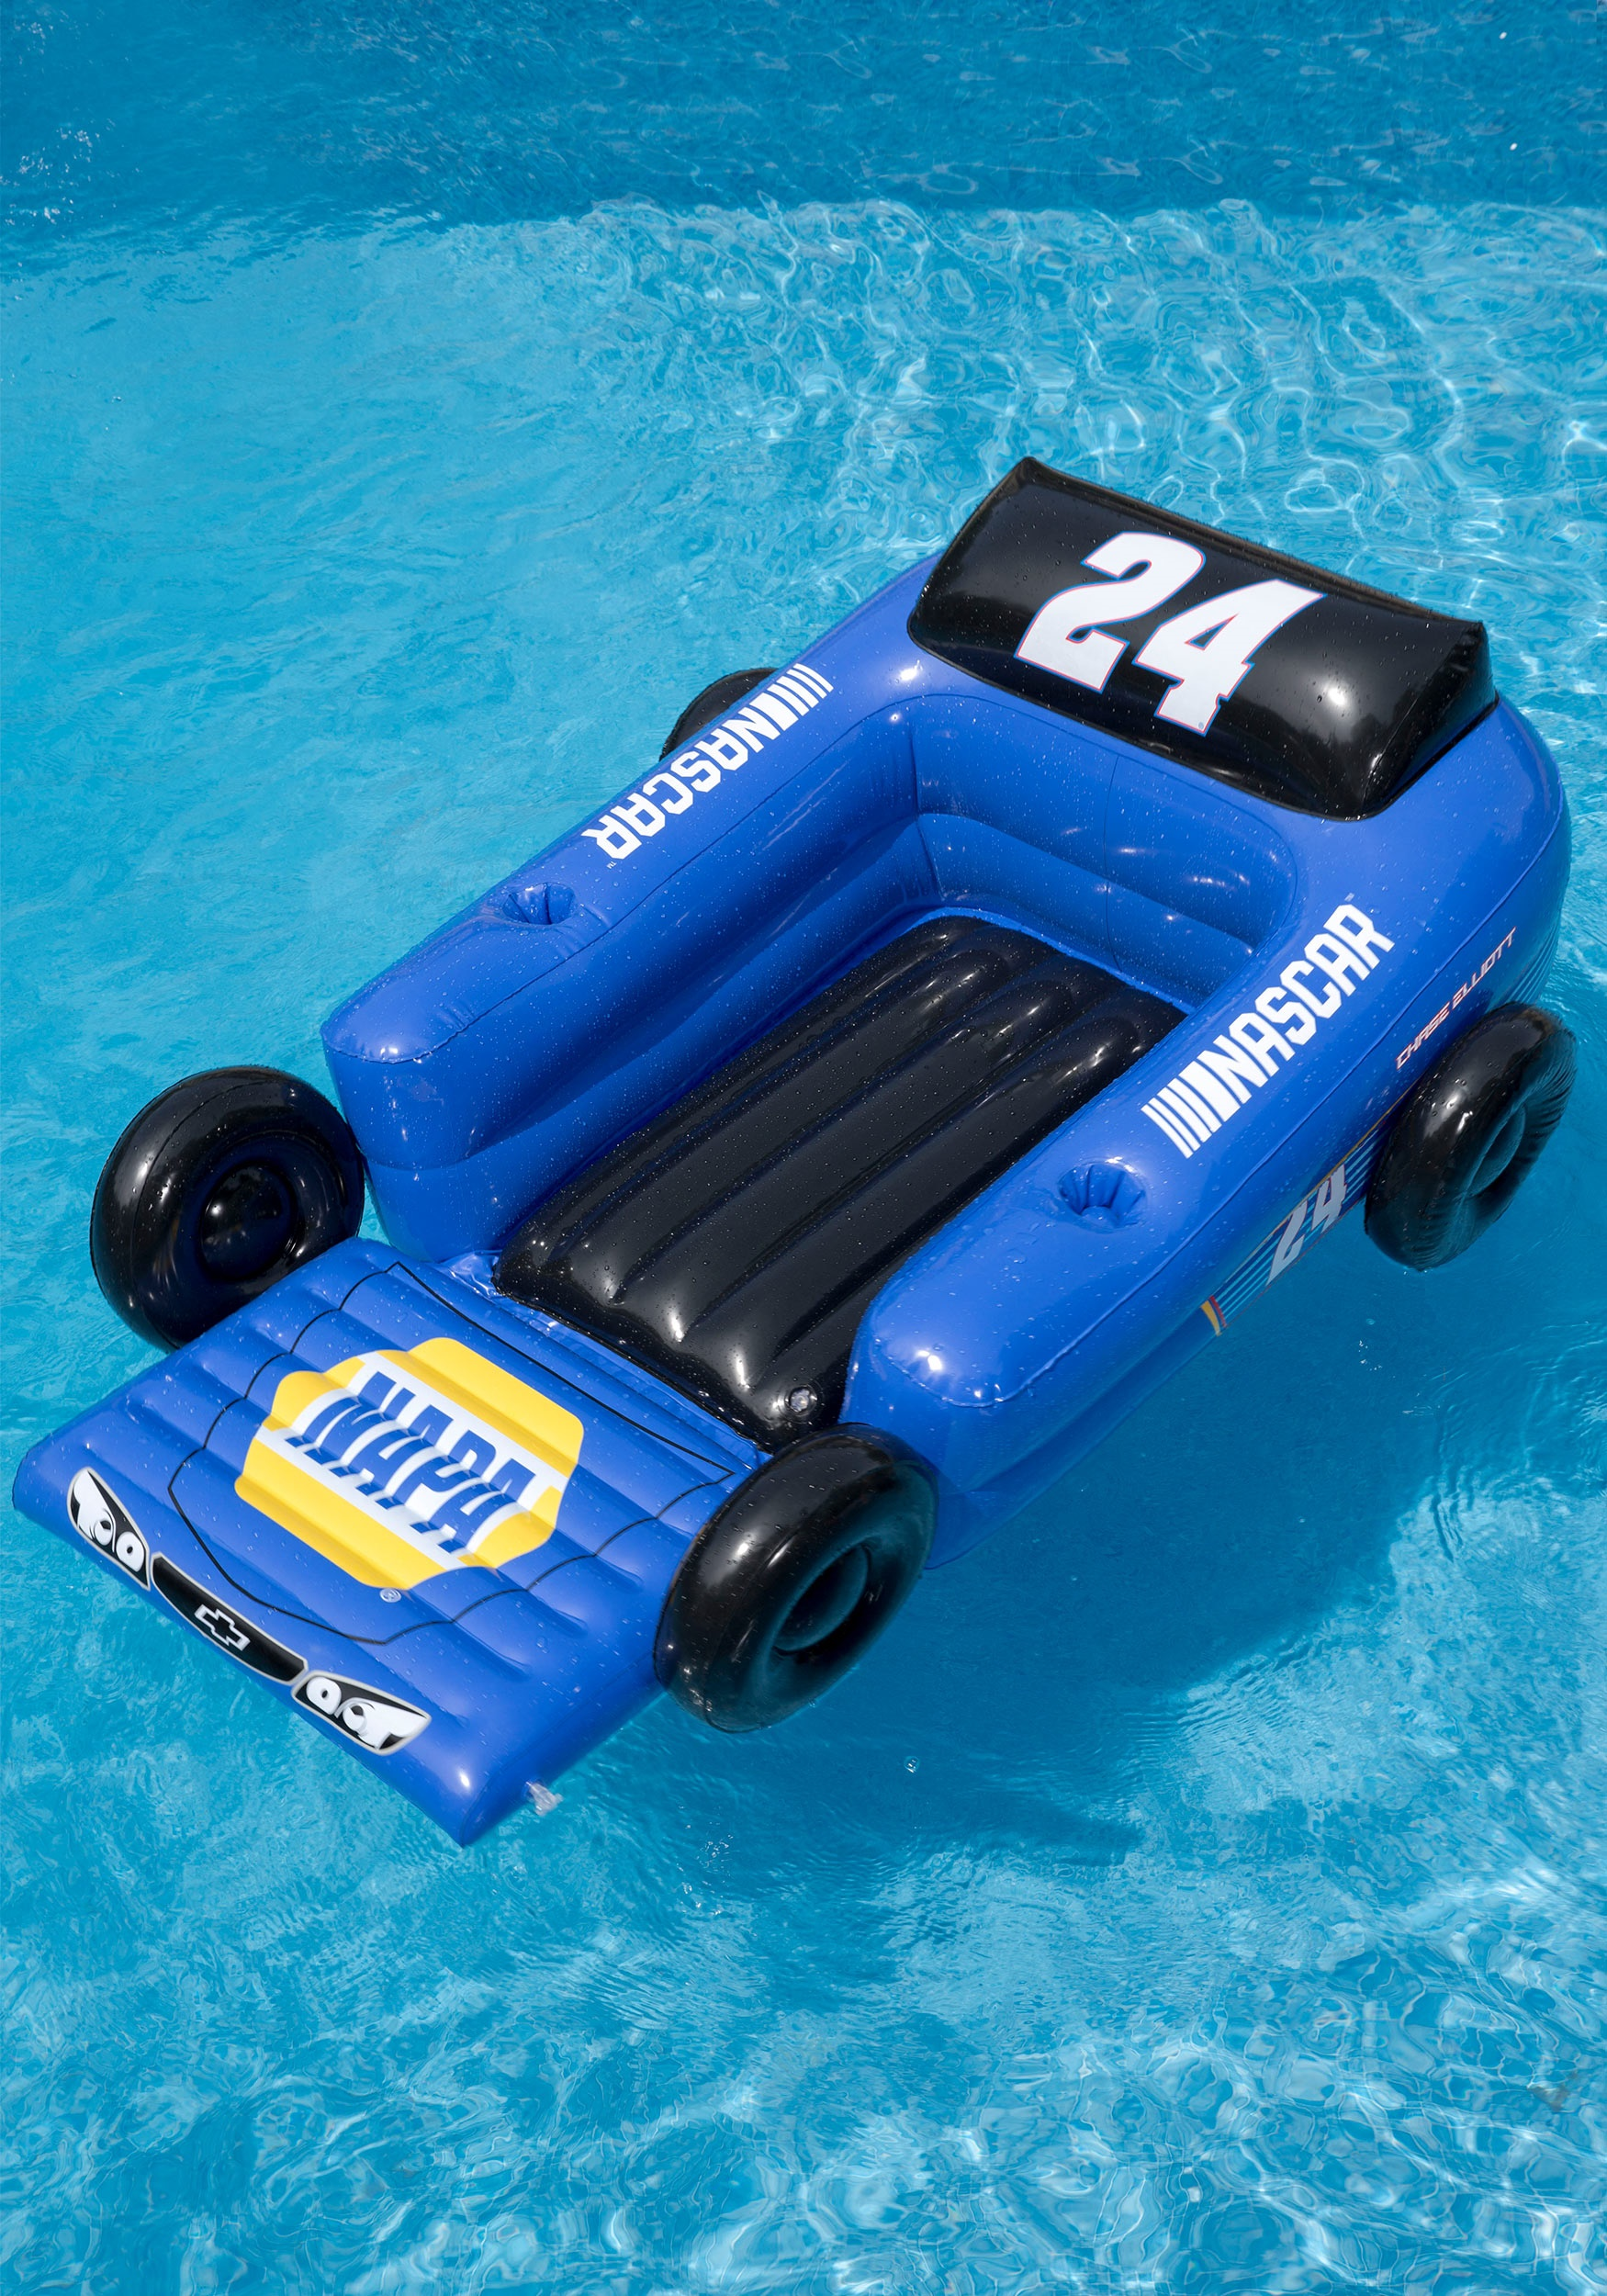 office chair review cool chairs for man cave chase elliott nascar pool lounger